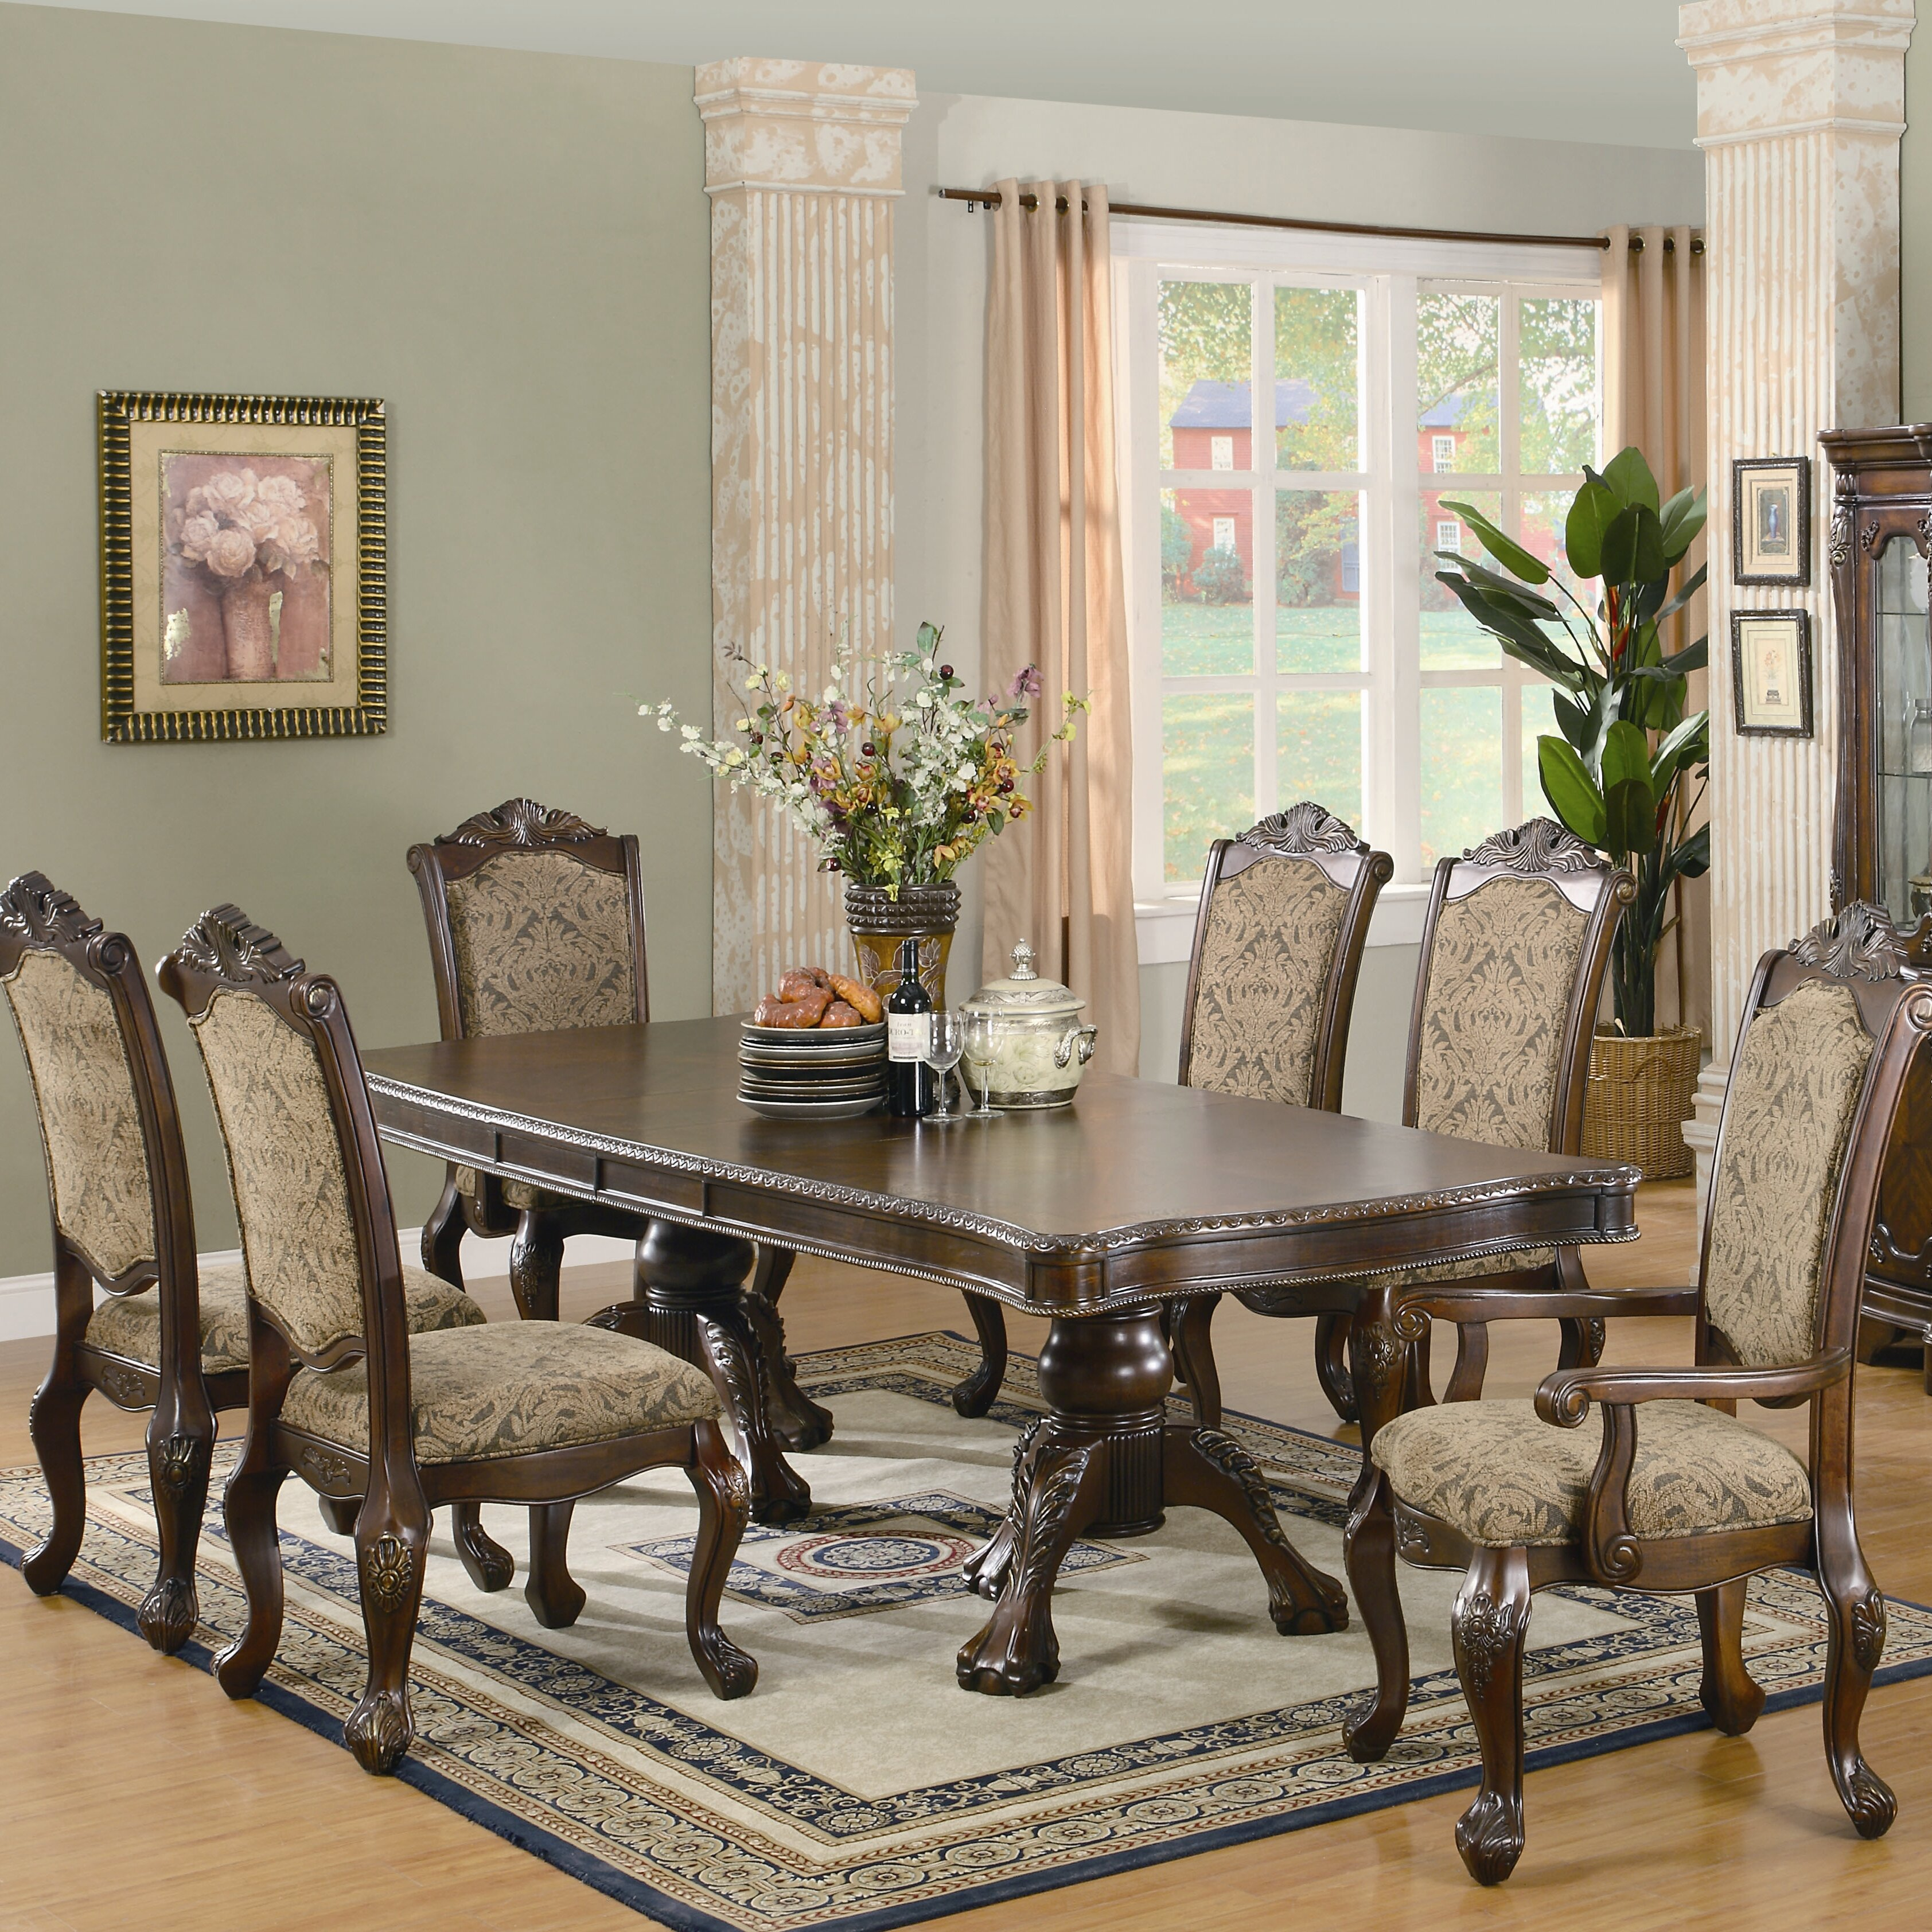 Wildon home italy dining table for Wildon home dining